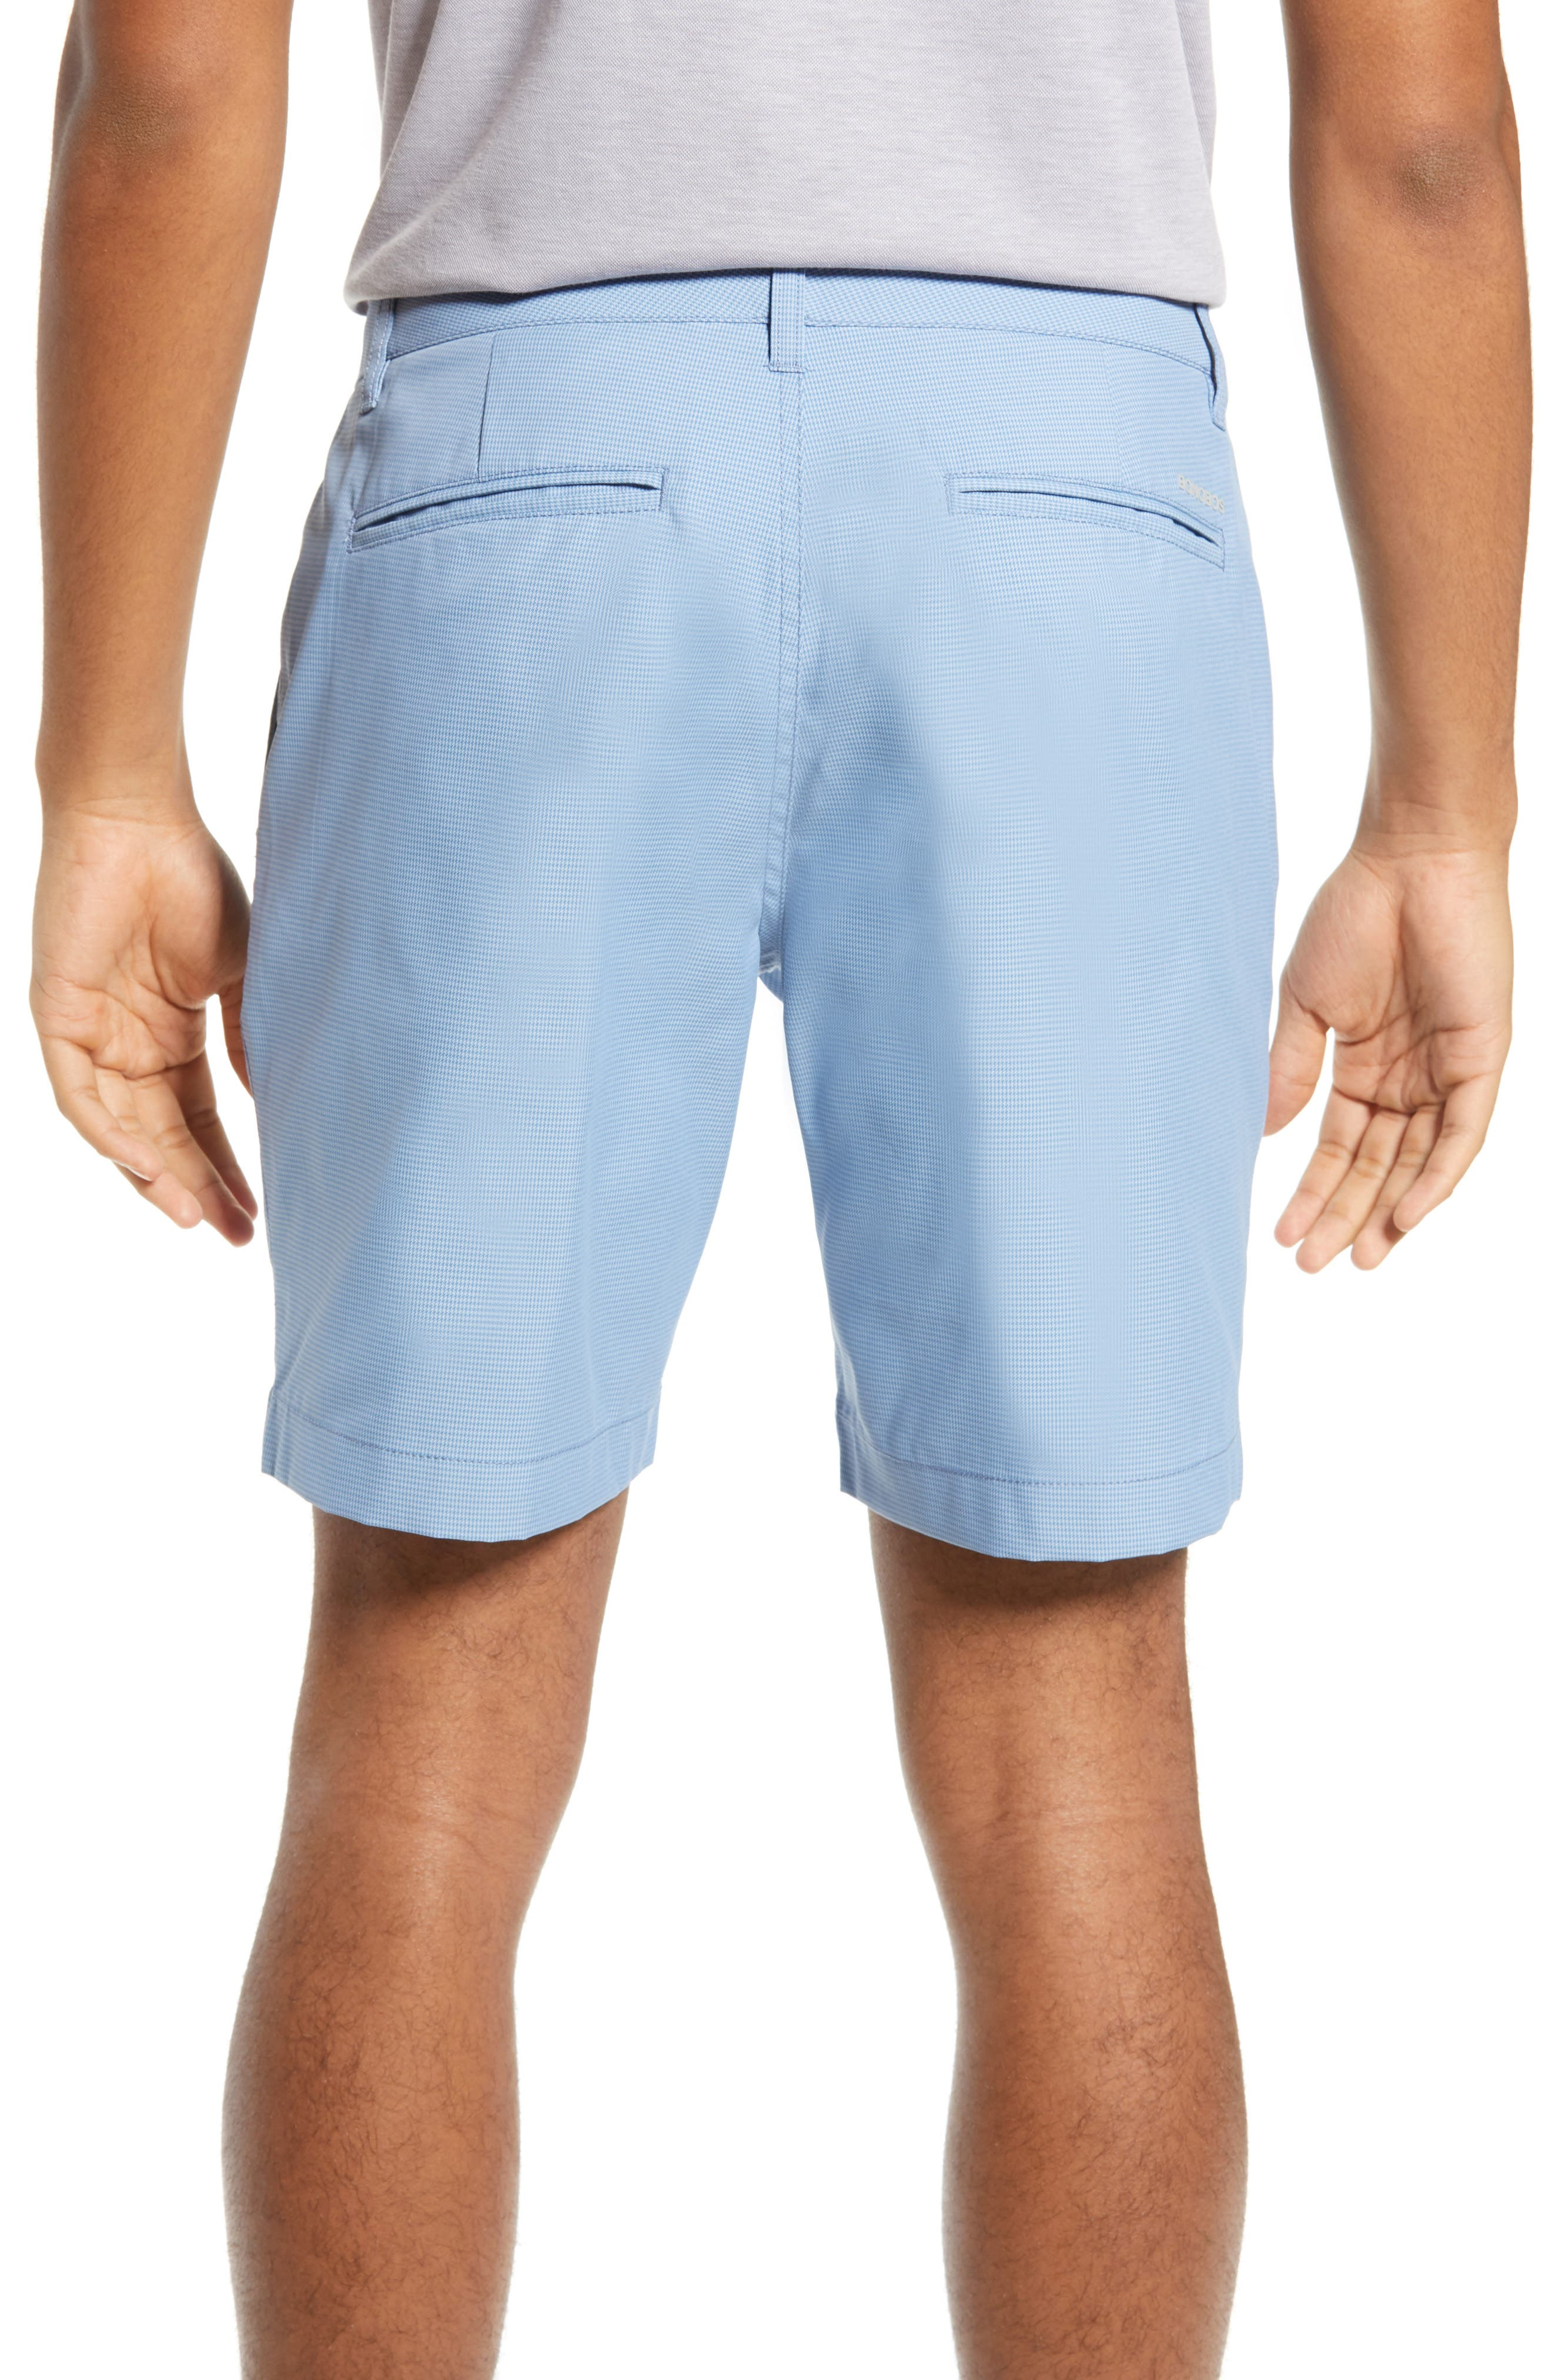 BONOBOS, The Highland Micro Houndstooth Golf Shorts, Alternate thumbnail 2, color, BLUE MINICHECK C3